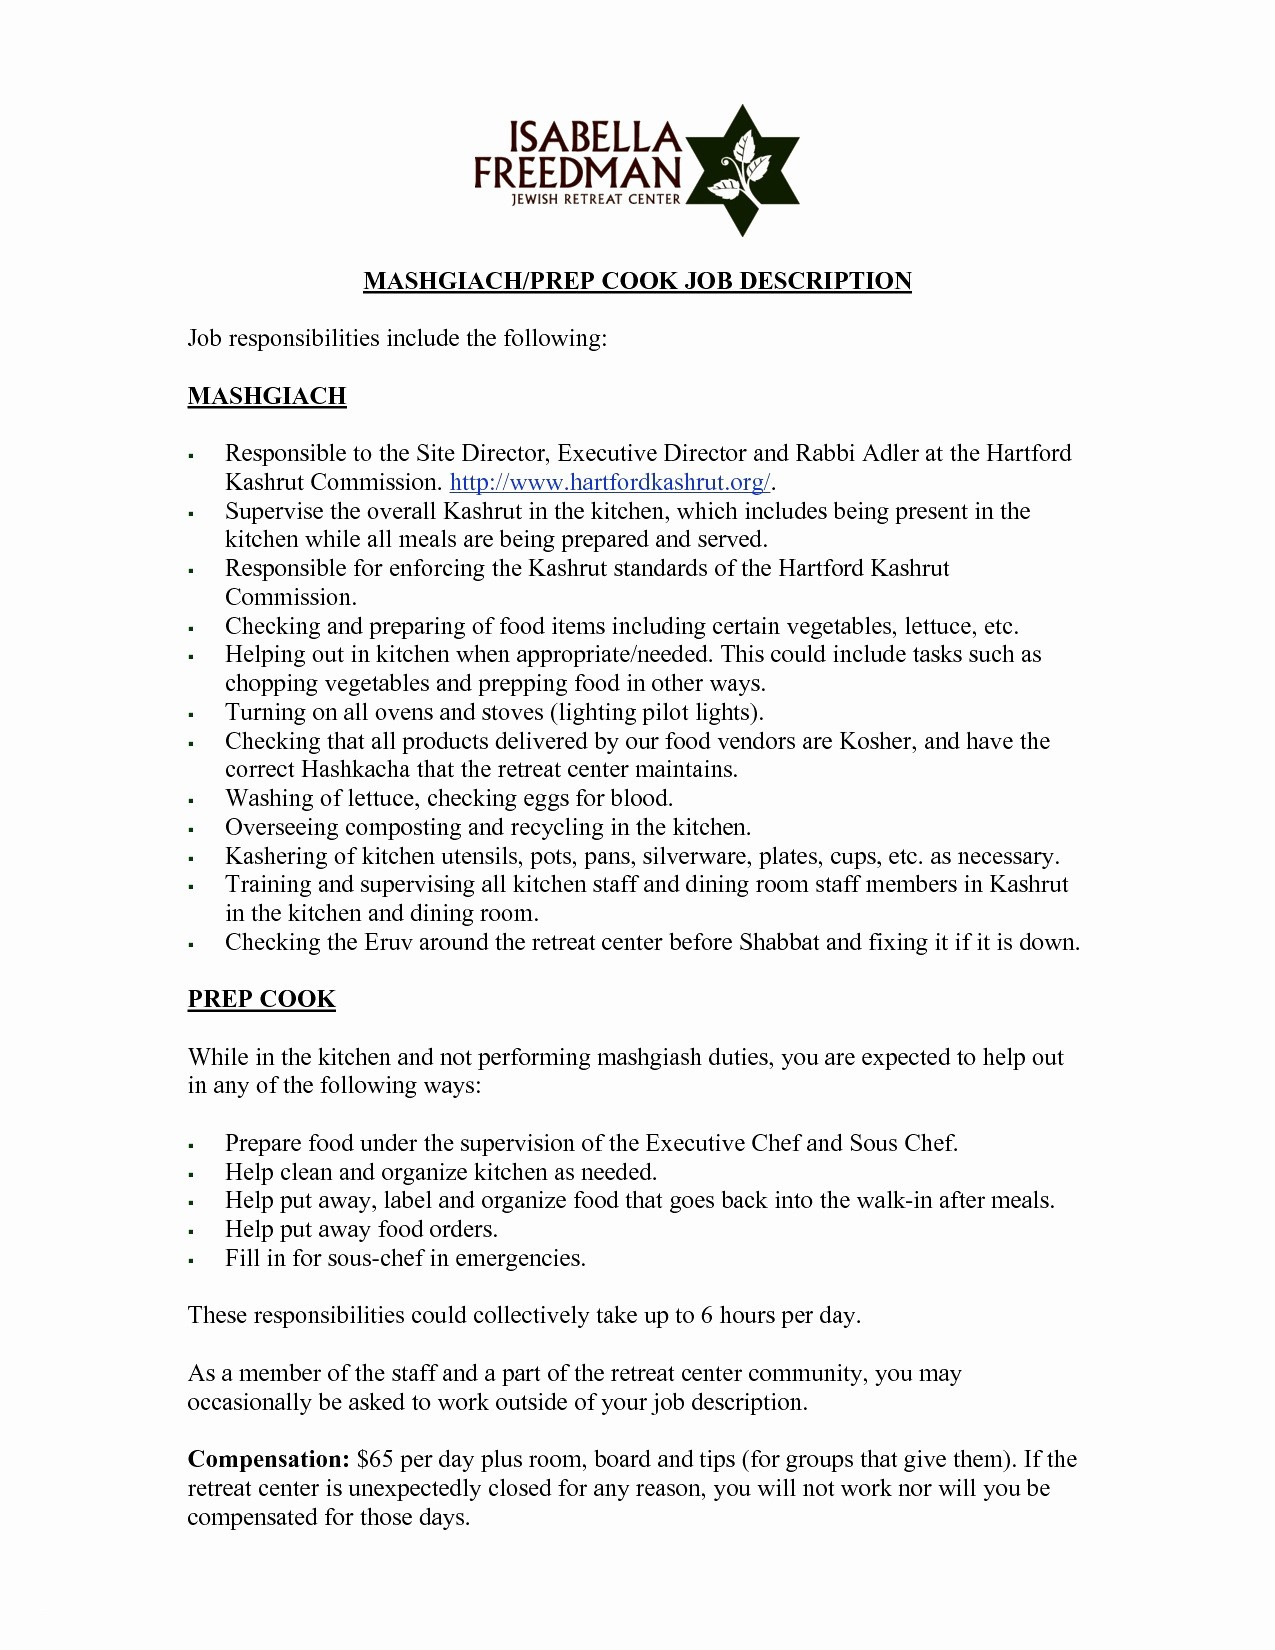 Resume Cover Letter Template - Cover Letter Job Sample Fresh Resume Doc Template Luxury Resume and